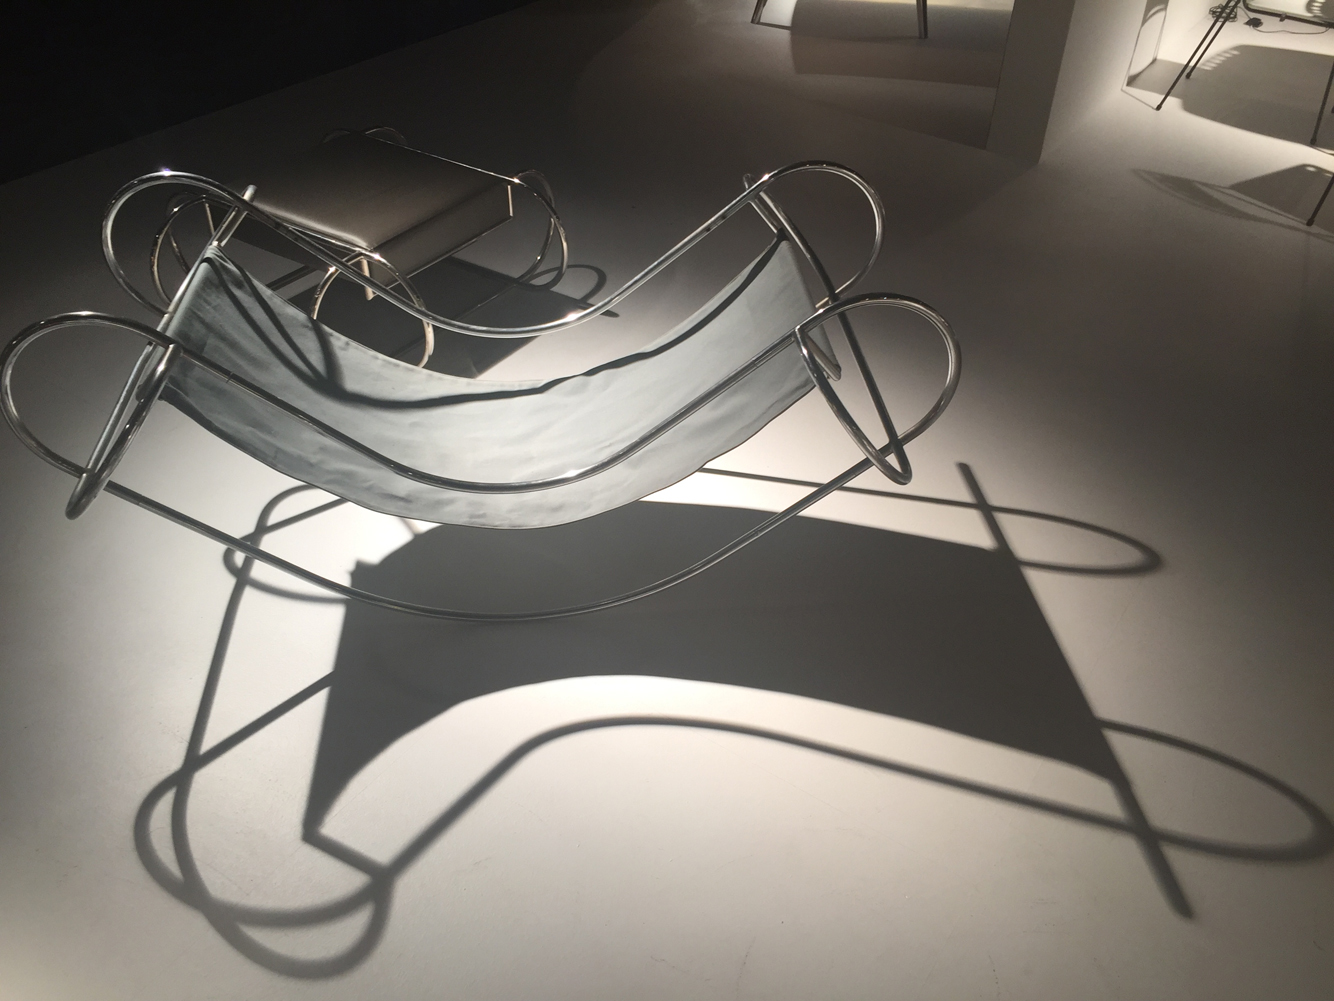 Rocking chair, 1971, AtelierA, by Jean-Michel Sanejouand from Jousse entreprise.